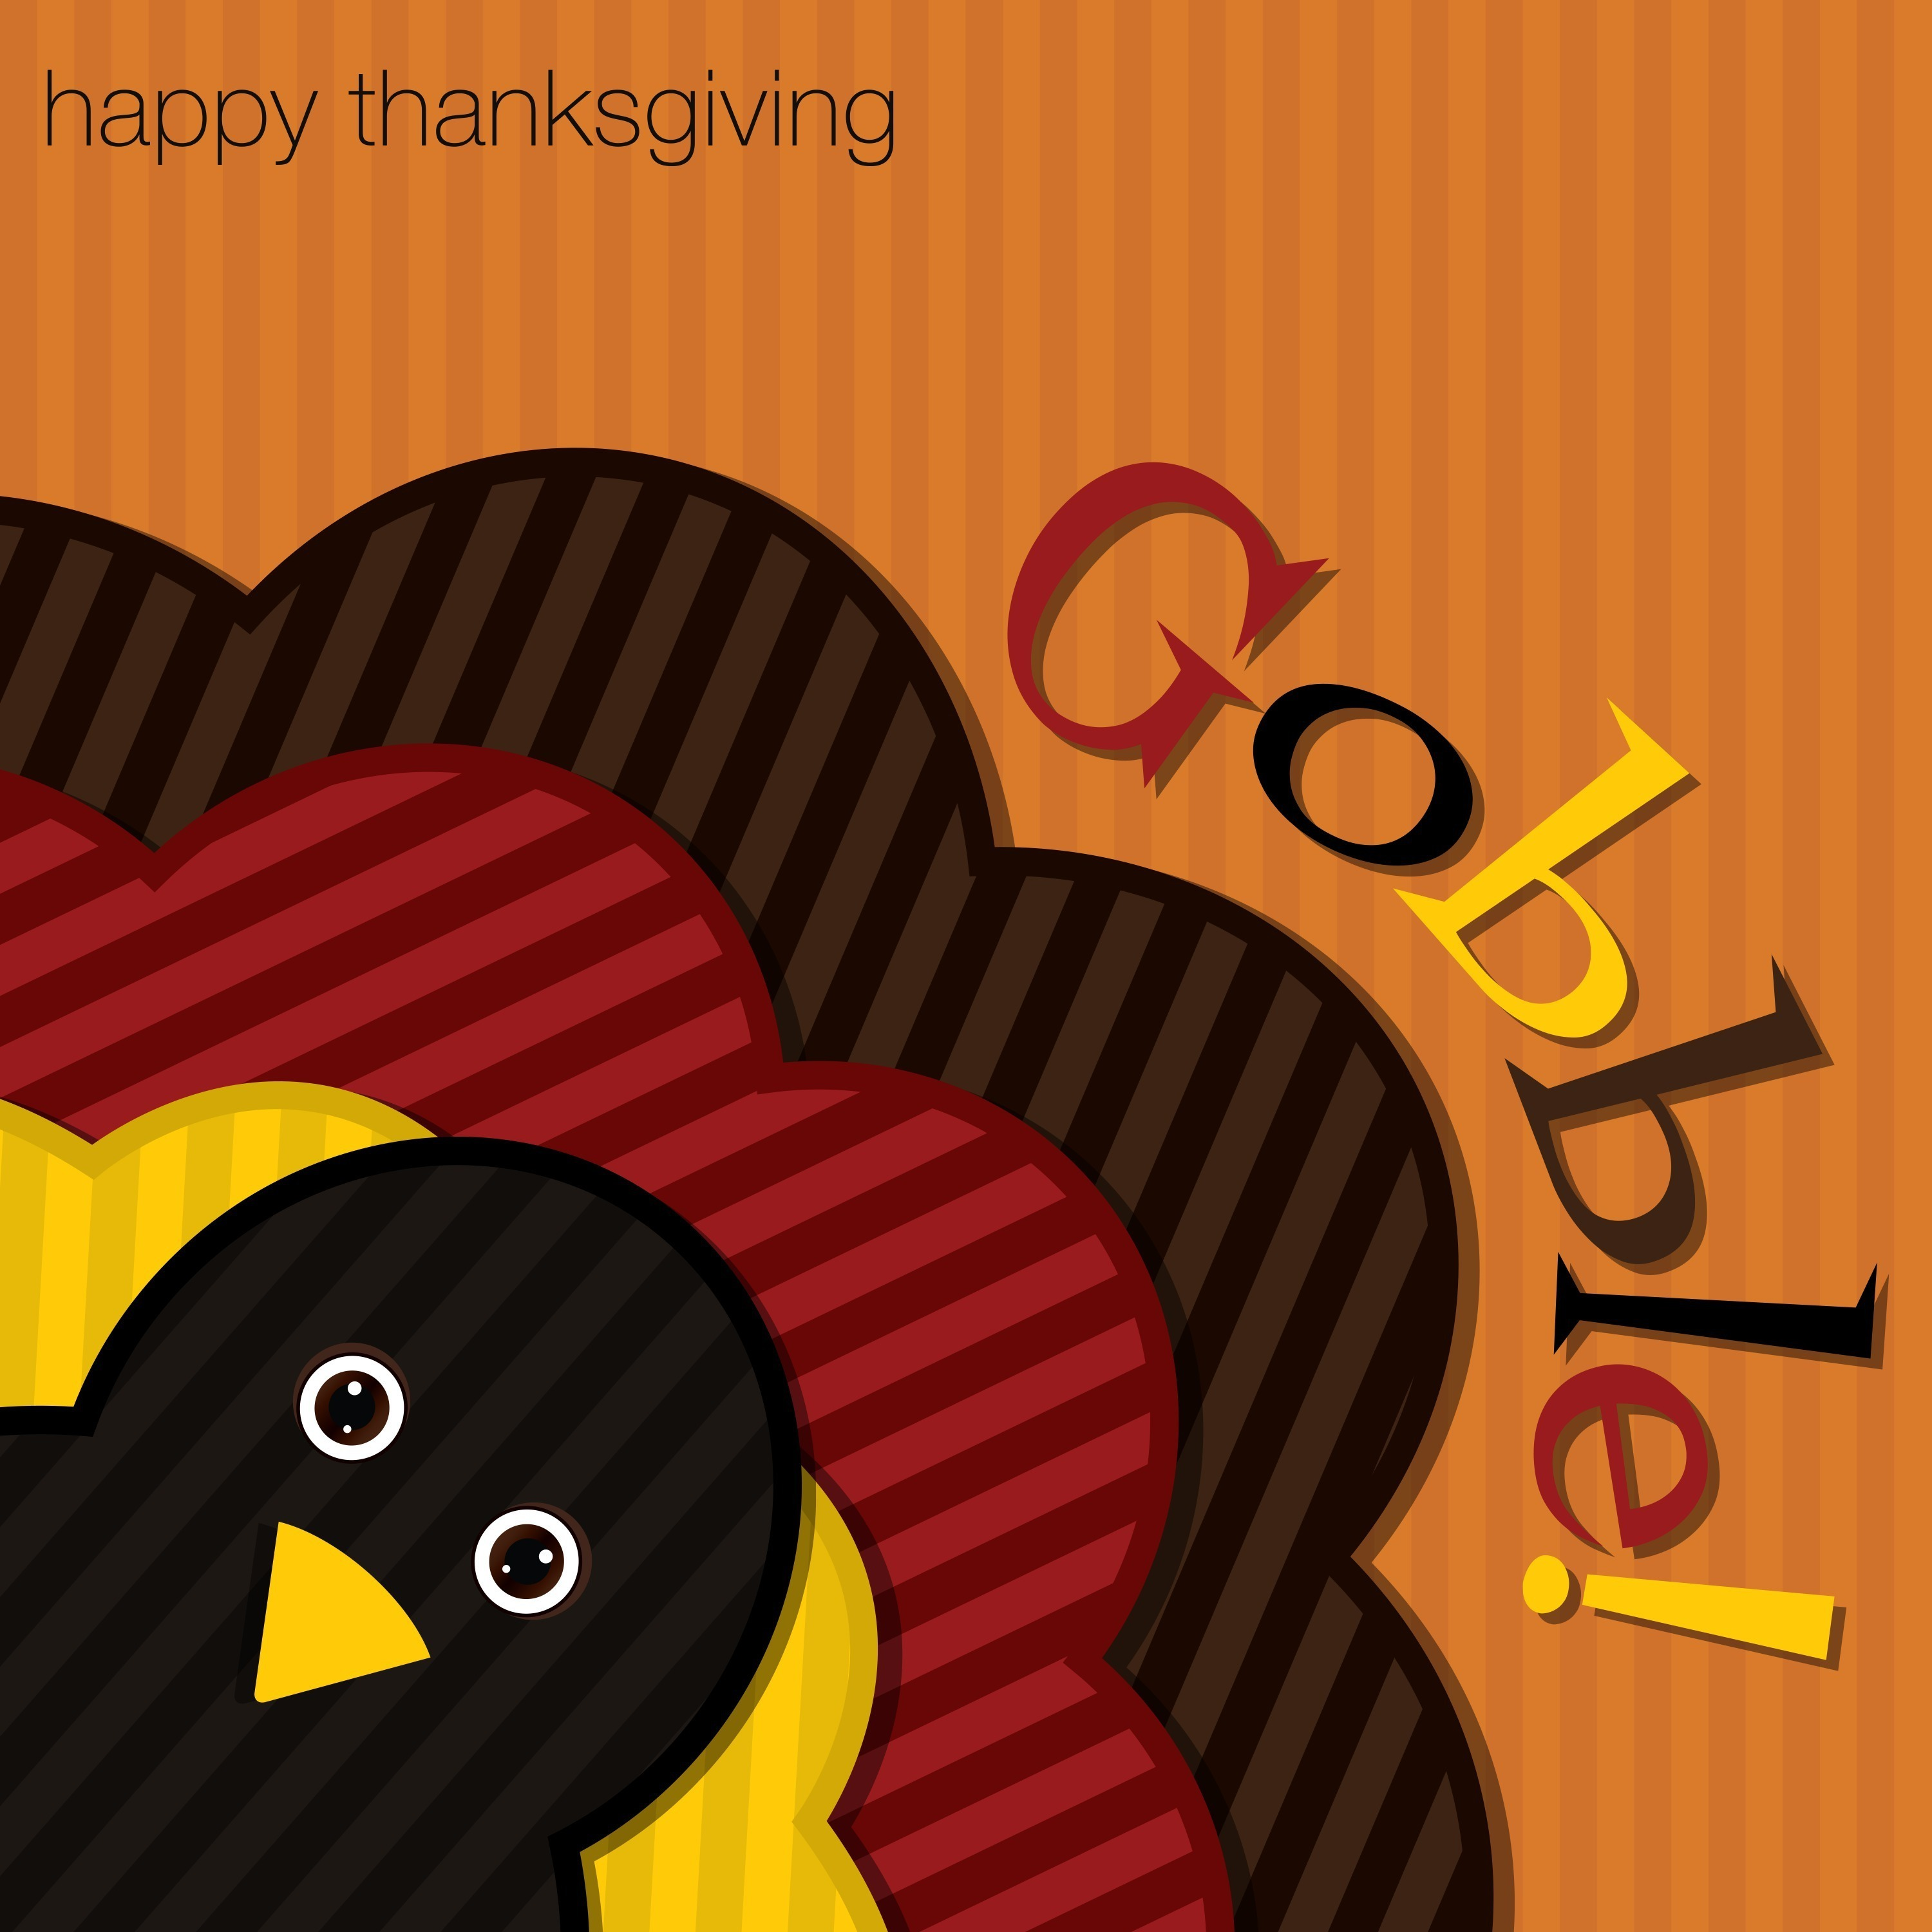 996e674f3fba20631ae0_Gobble__Thanksgiving__graphic.jpg